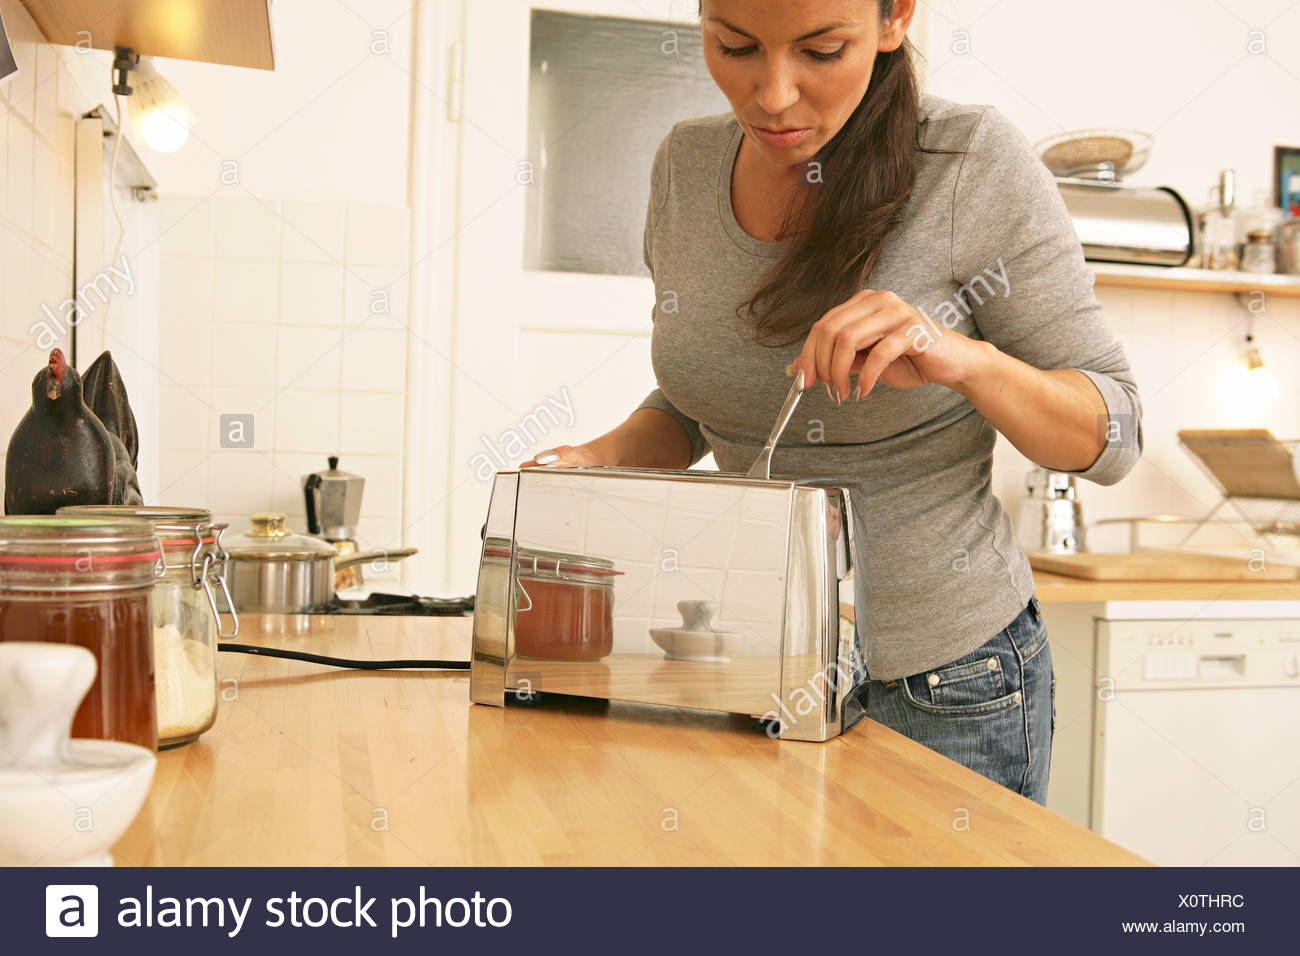 Person licking a toaster sorry